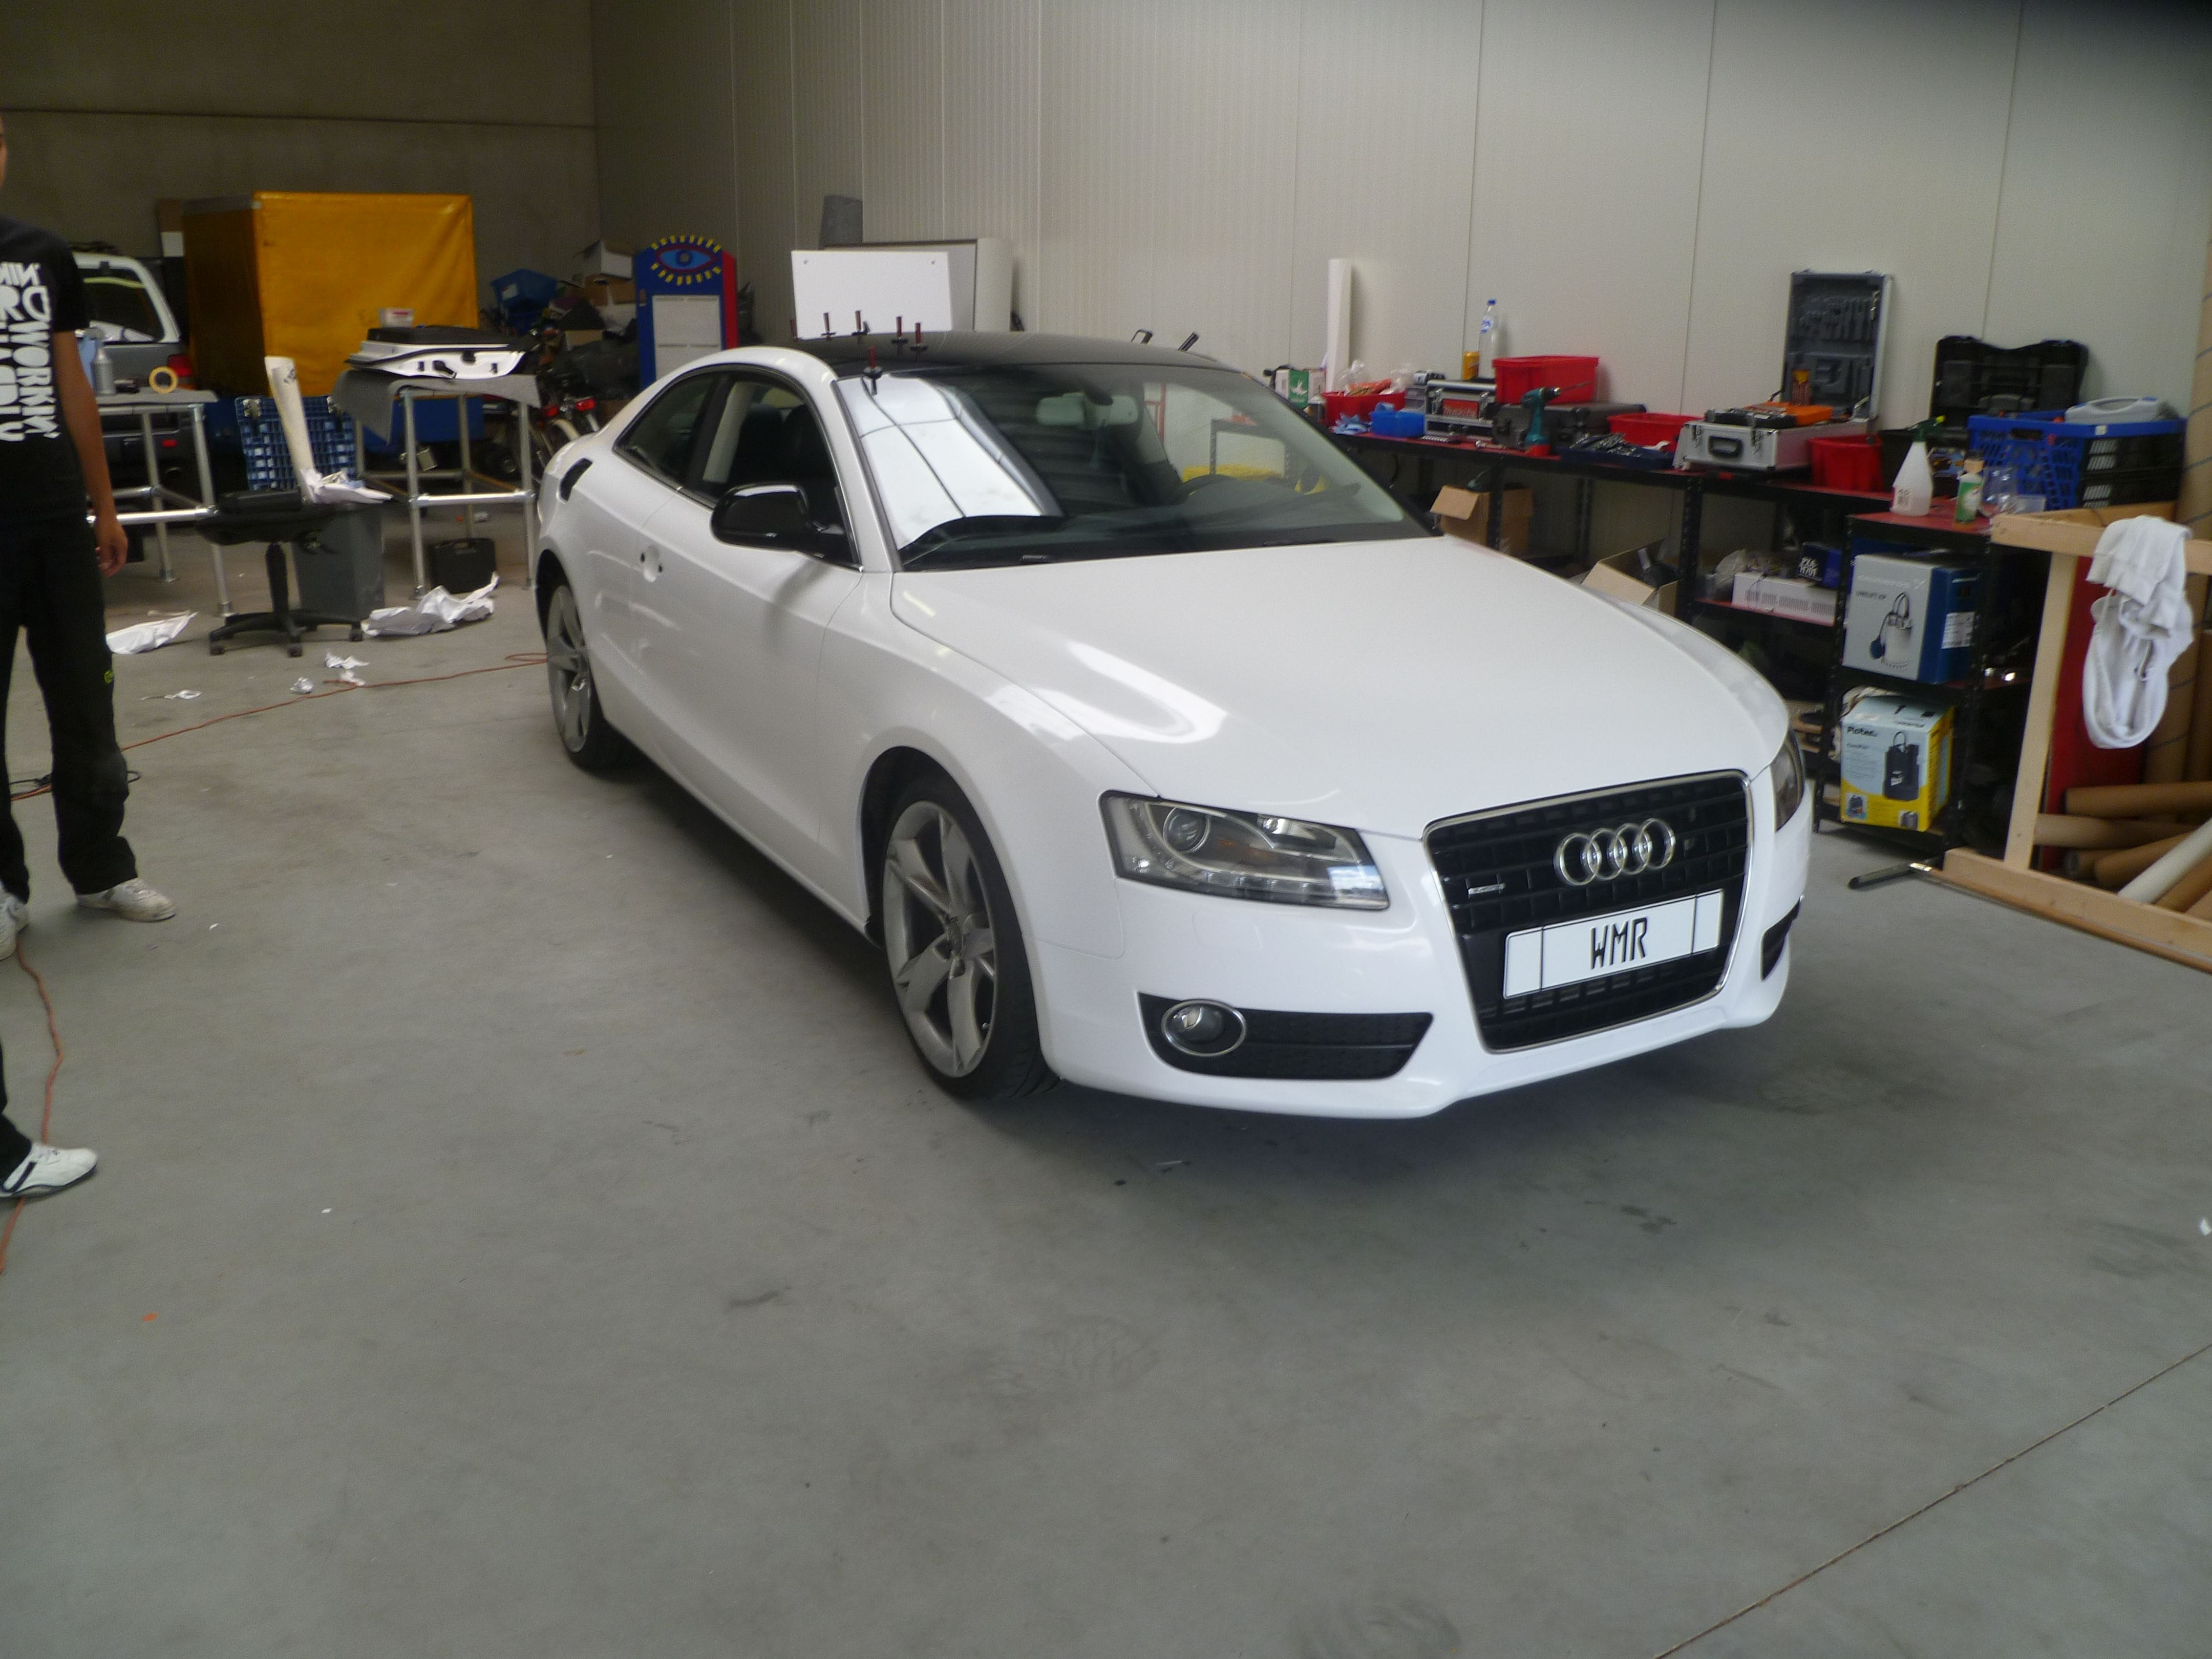 Audi A5 coupe met Metallic Witte Wrap, Carwrapping door Wrapmyride.nu Foto-nr:4724, ©2020